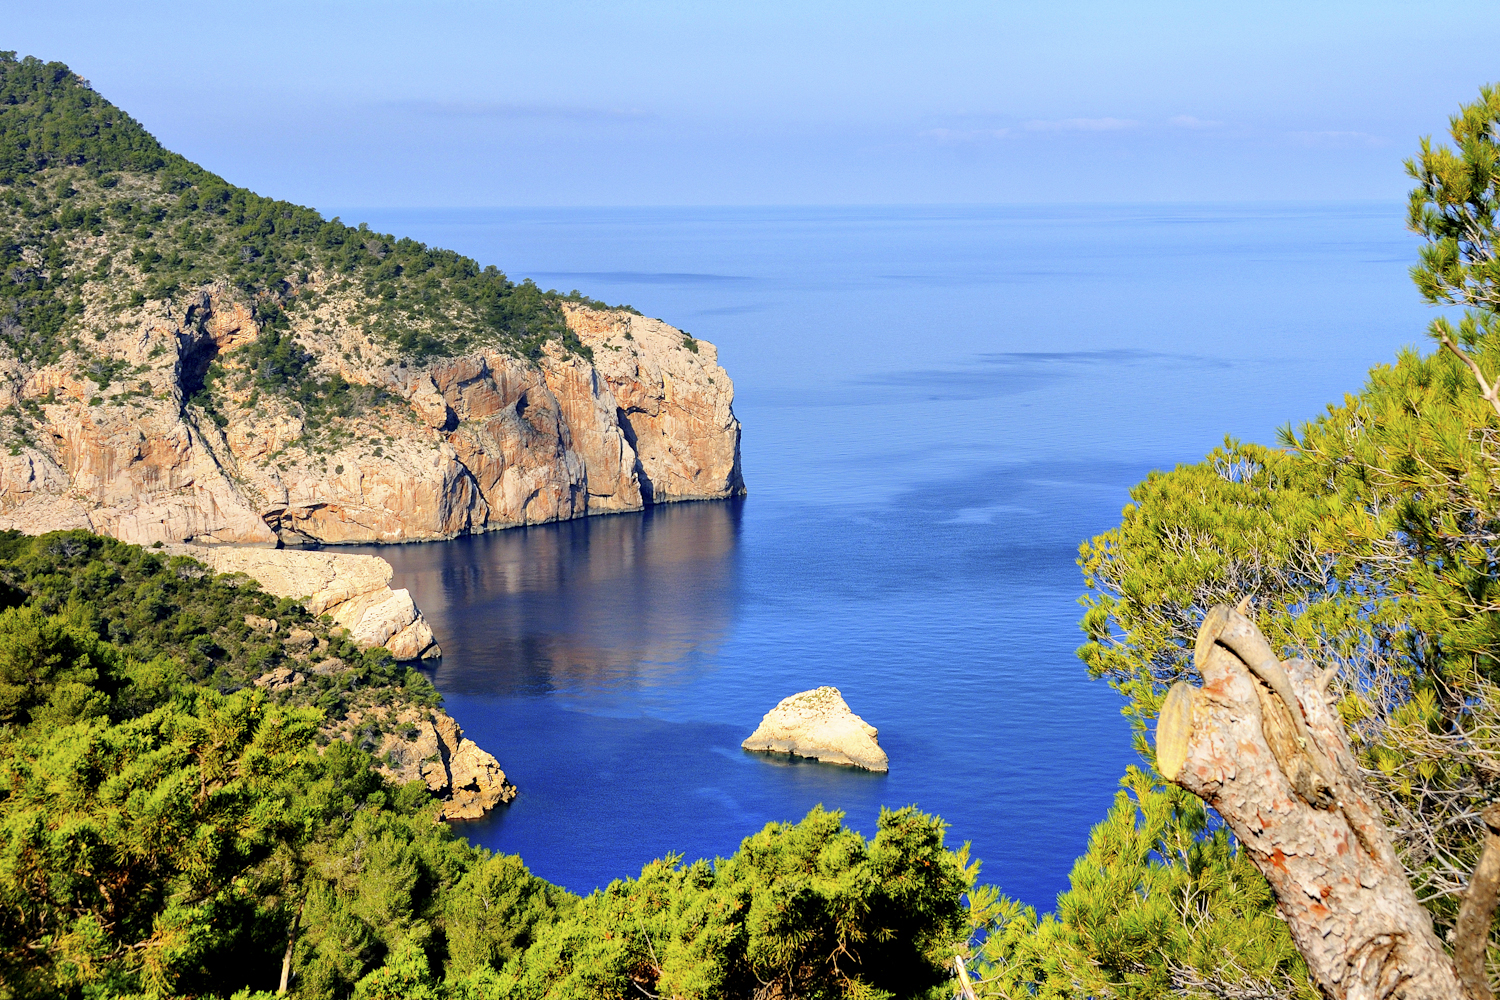 Ibiza S Coastline And Landscapes In Photos Ibiza Spotlight